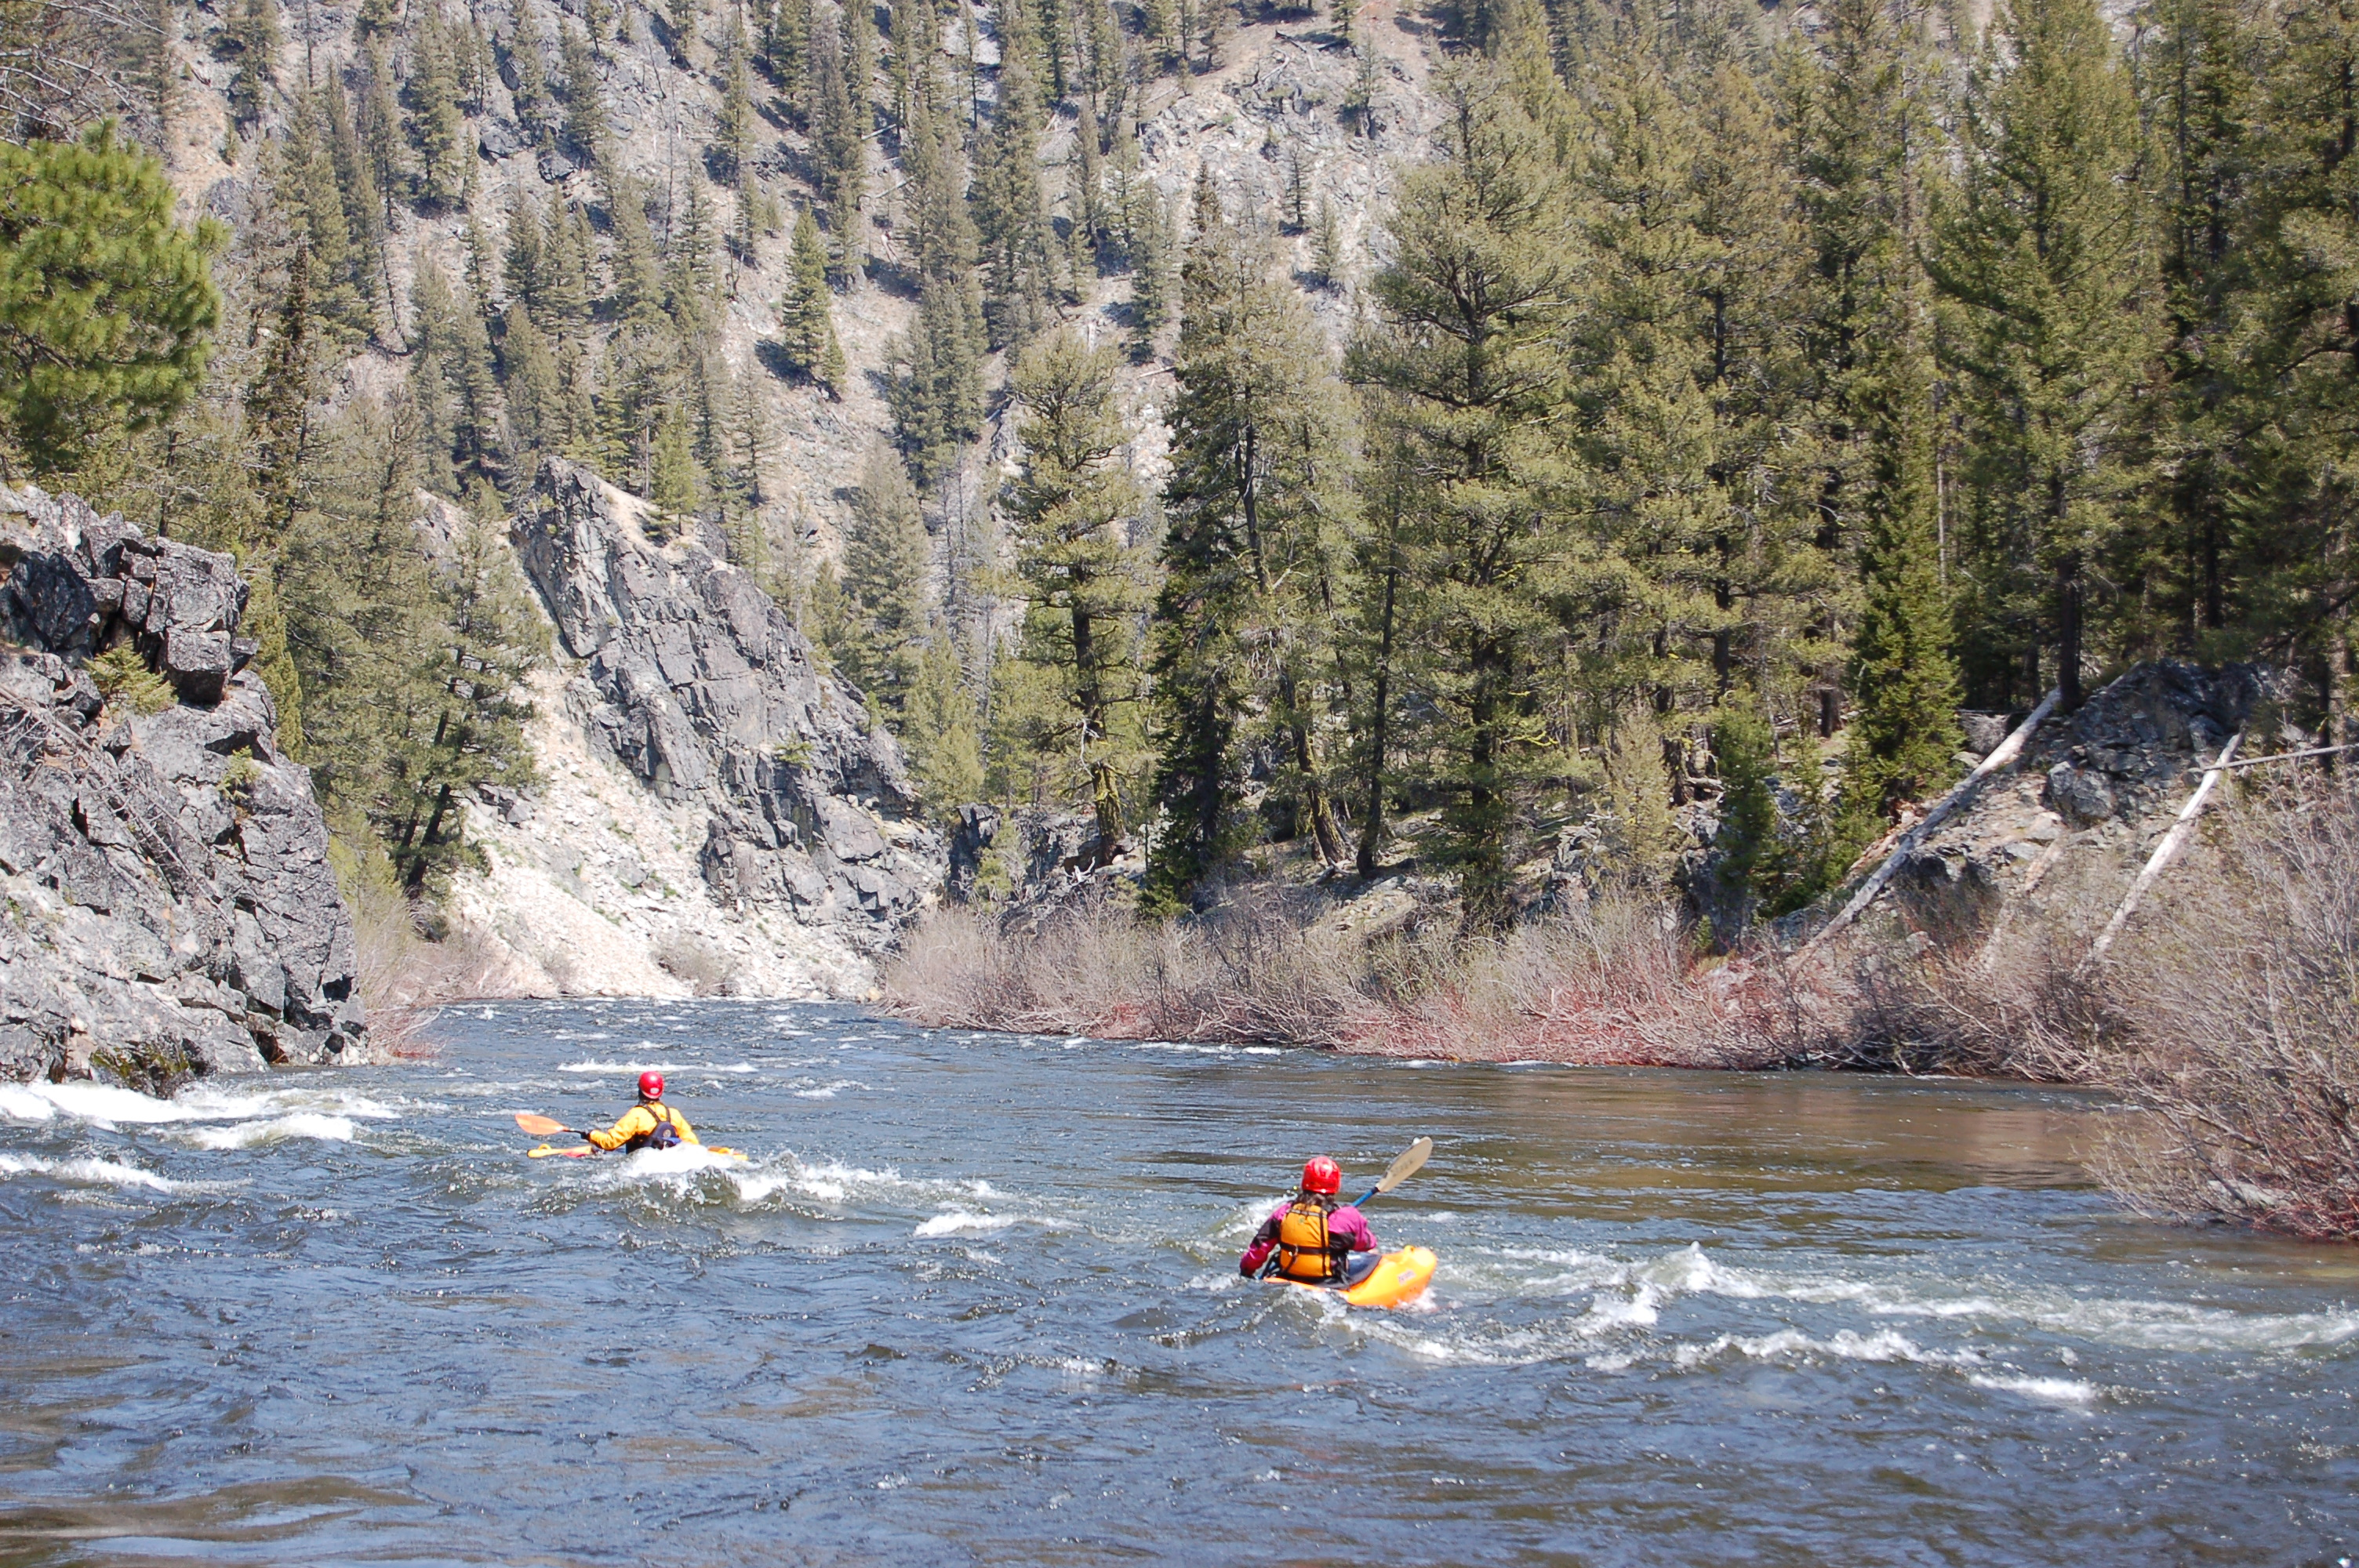 Marsh Creek: State Highway 21 to Middle Fork Salmon